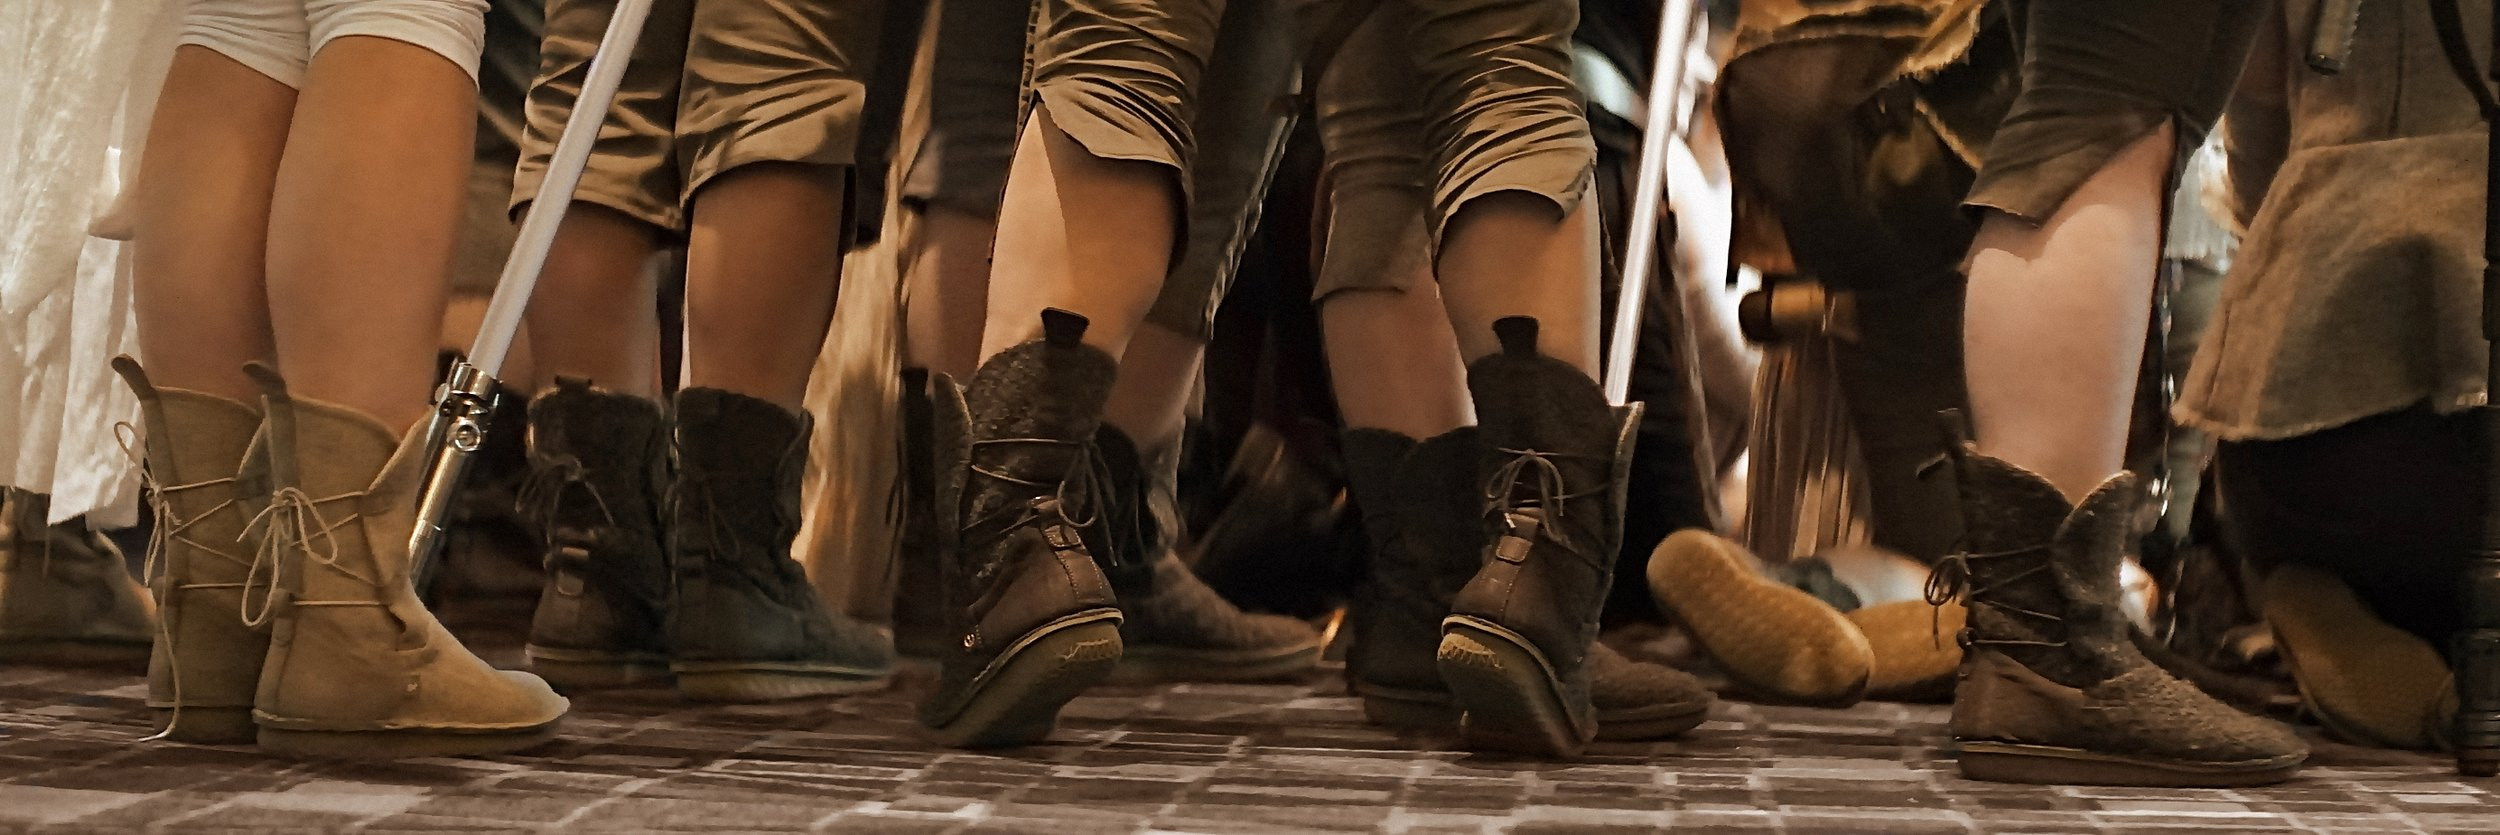 Lomo 75mm Anamorphic Lens | Star Wars Celebration Chicago - SWCC | Rey photo op, and whole bunch of Pozu Piper boots at SWCC. Photo by: Keith Nickoson